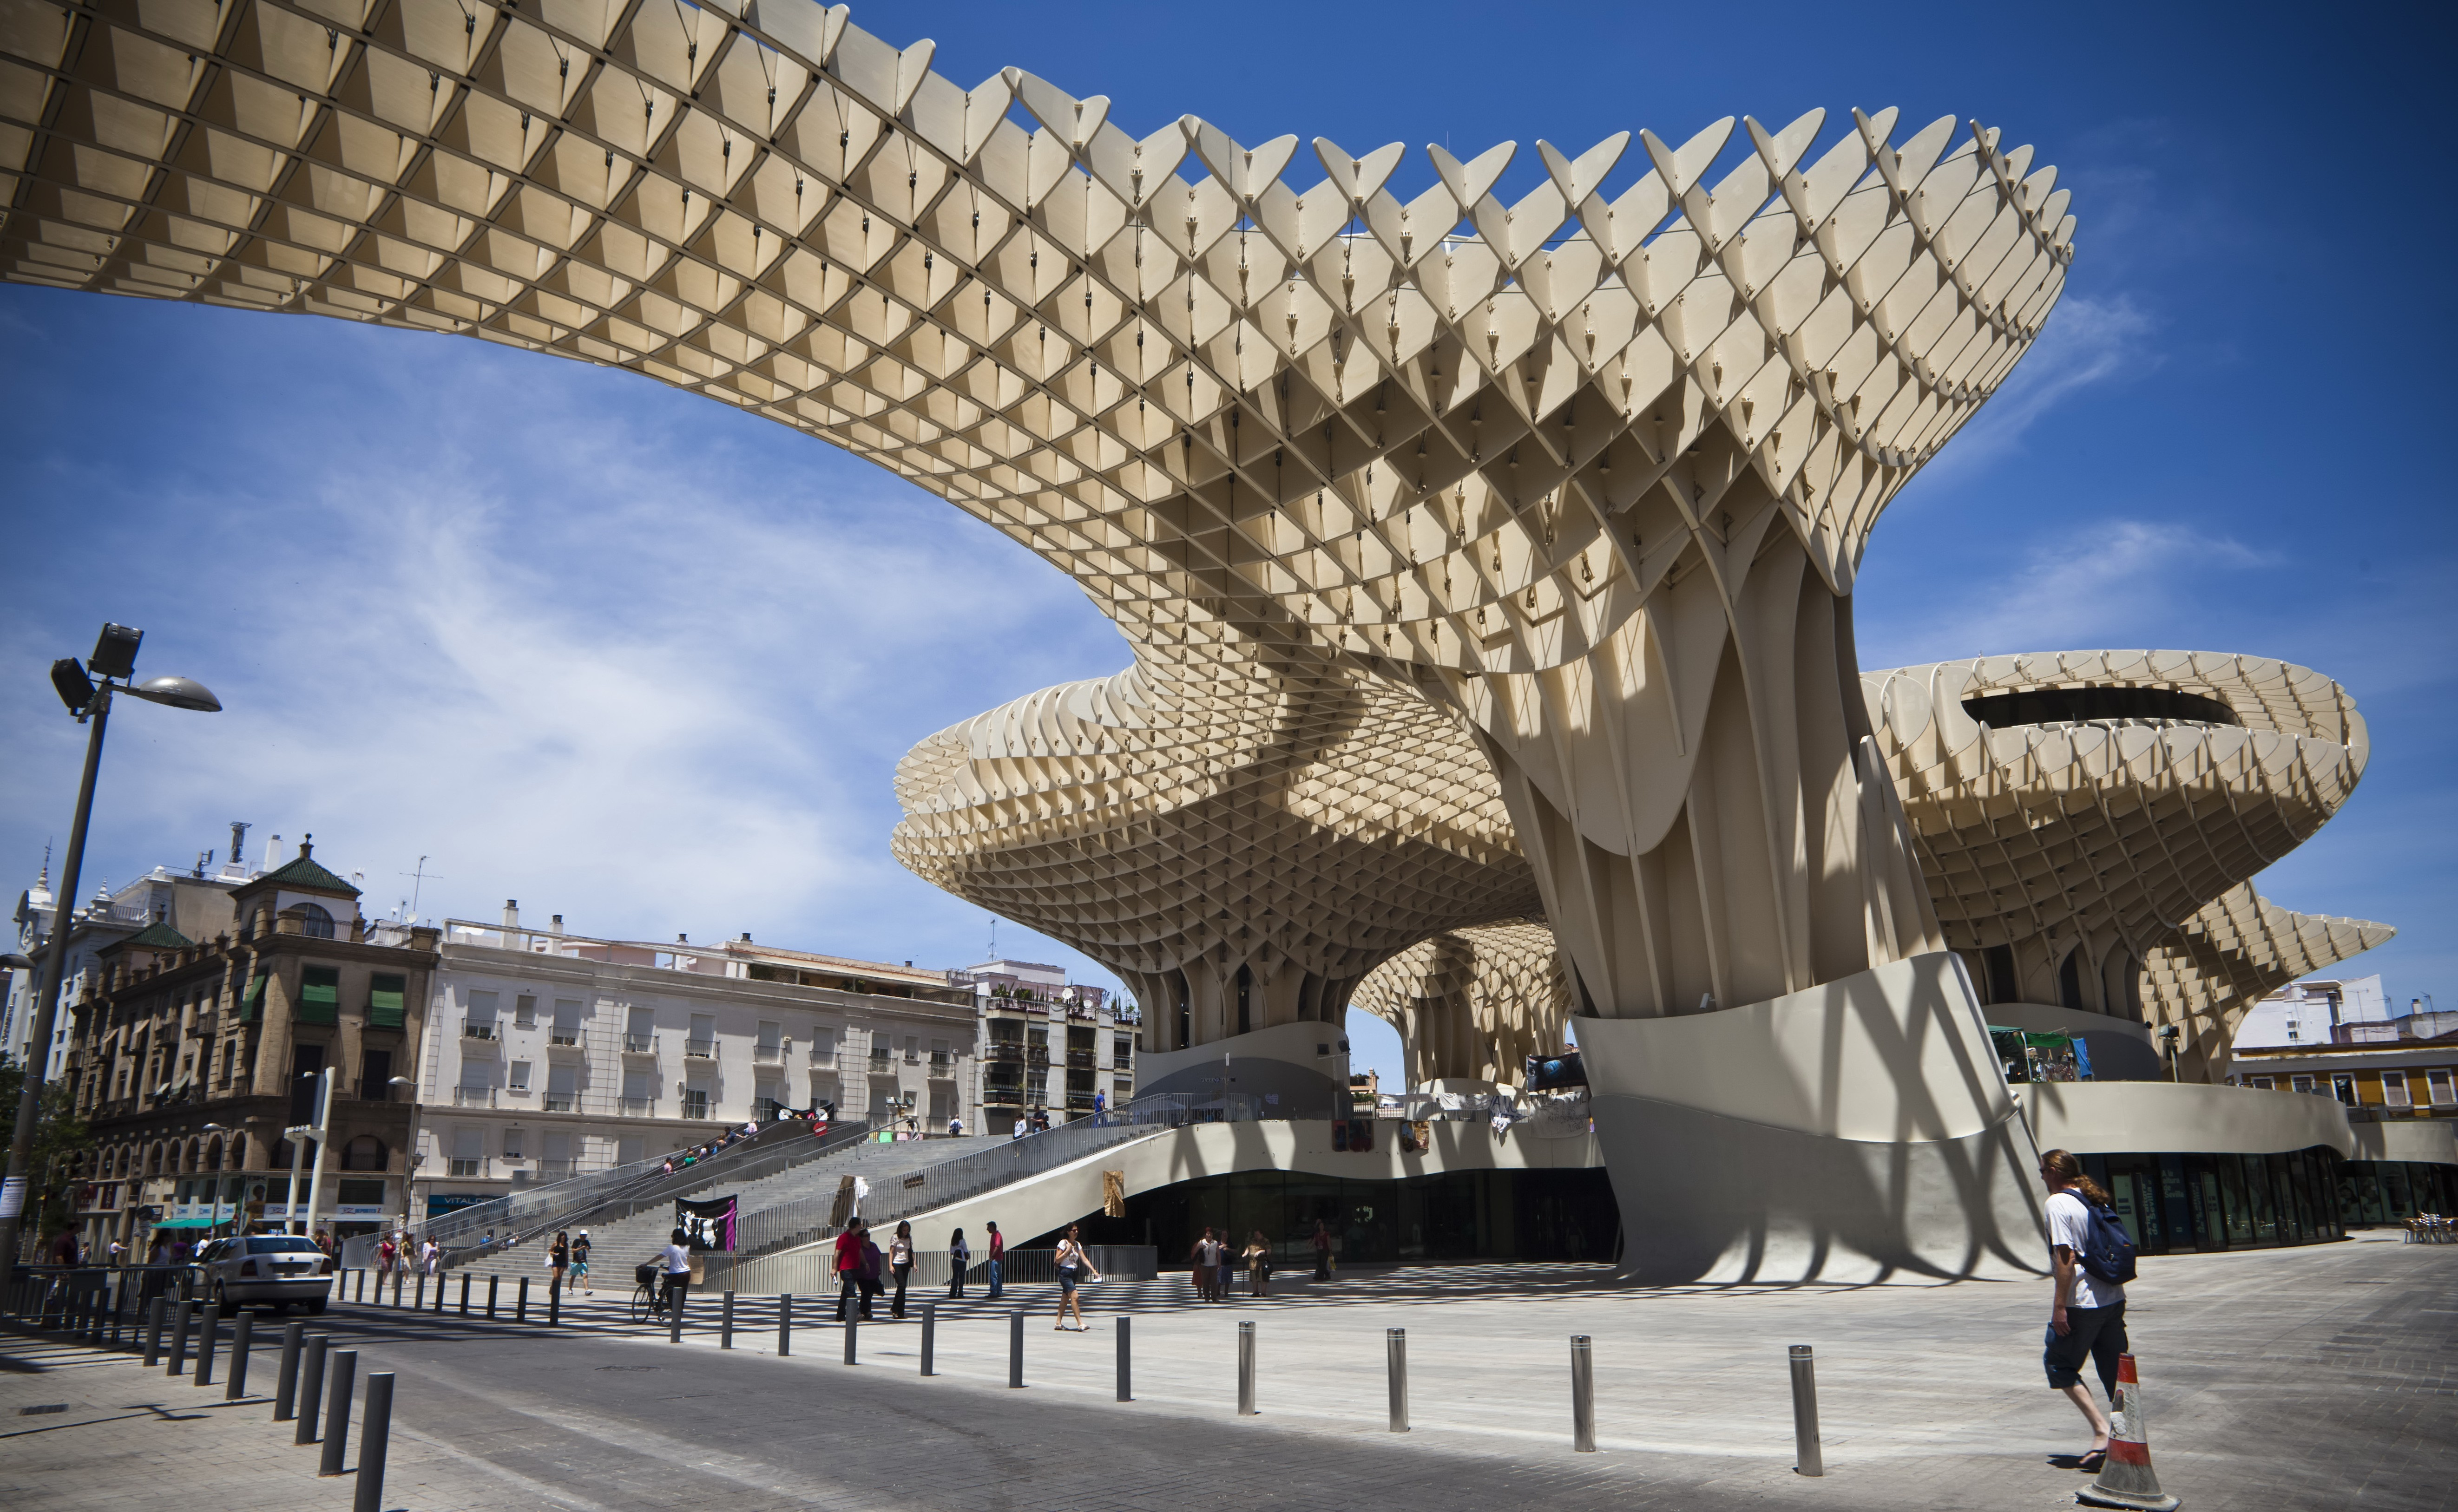 Wallpaper Metropol Parasol Sevilla Tourism Travel